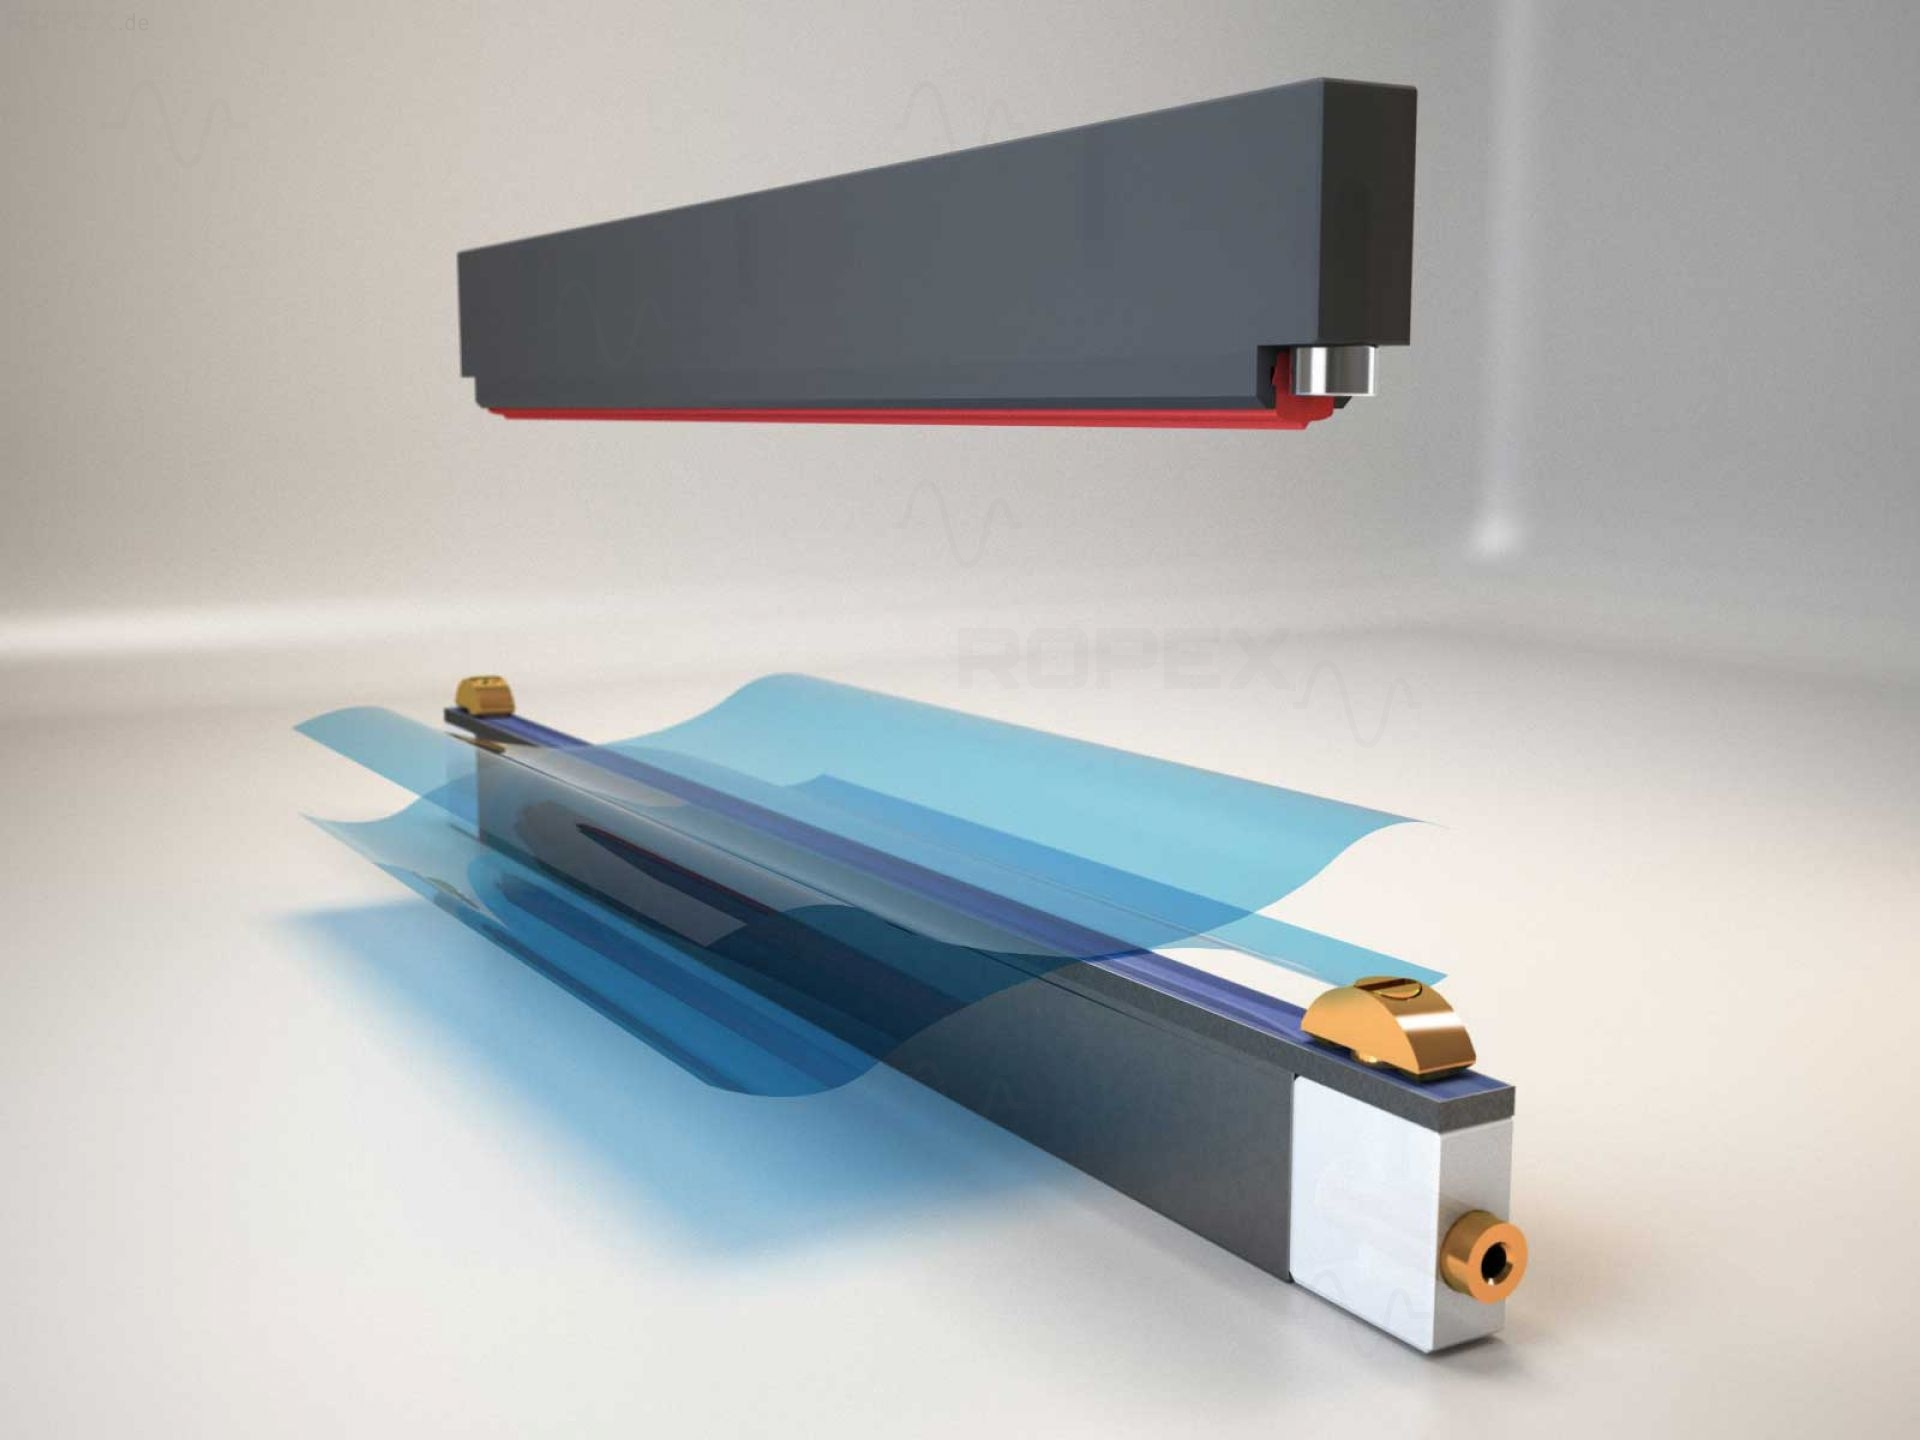 CIRUS heat sealing system for thermoplastic films - ROPEX